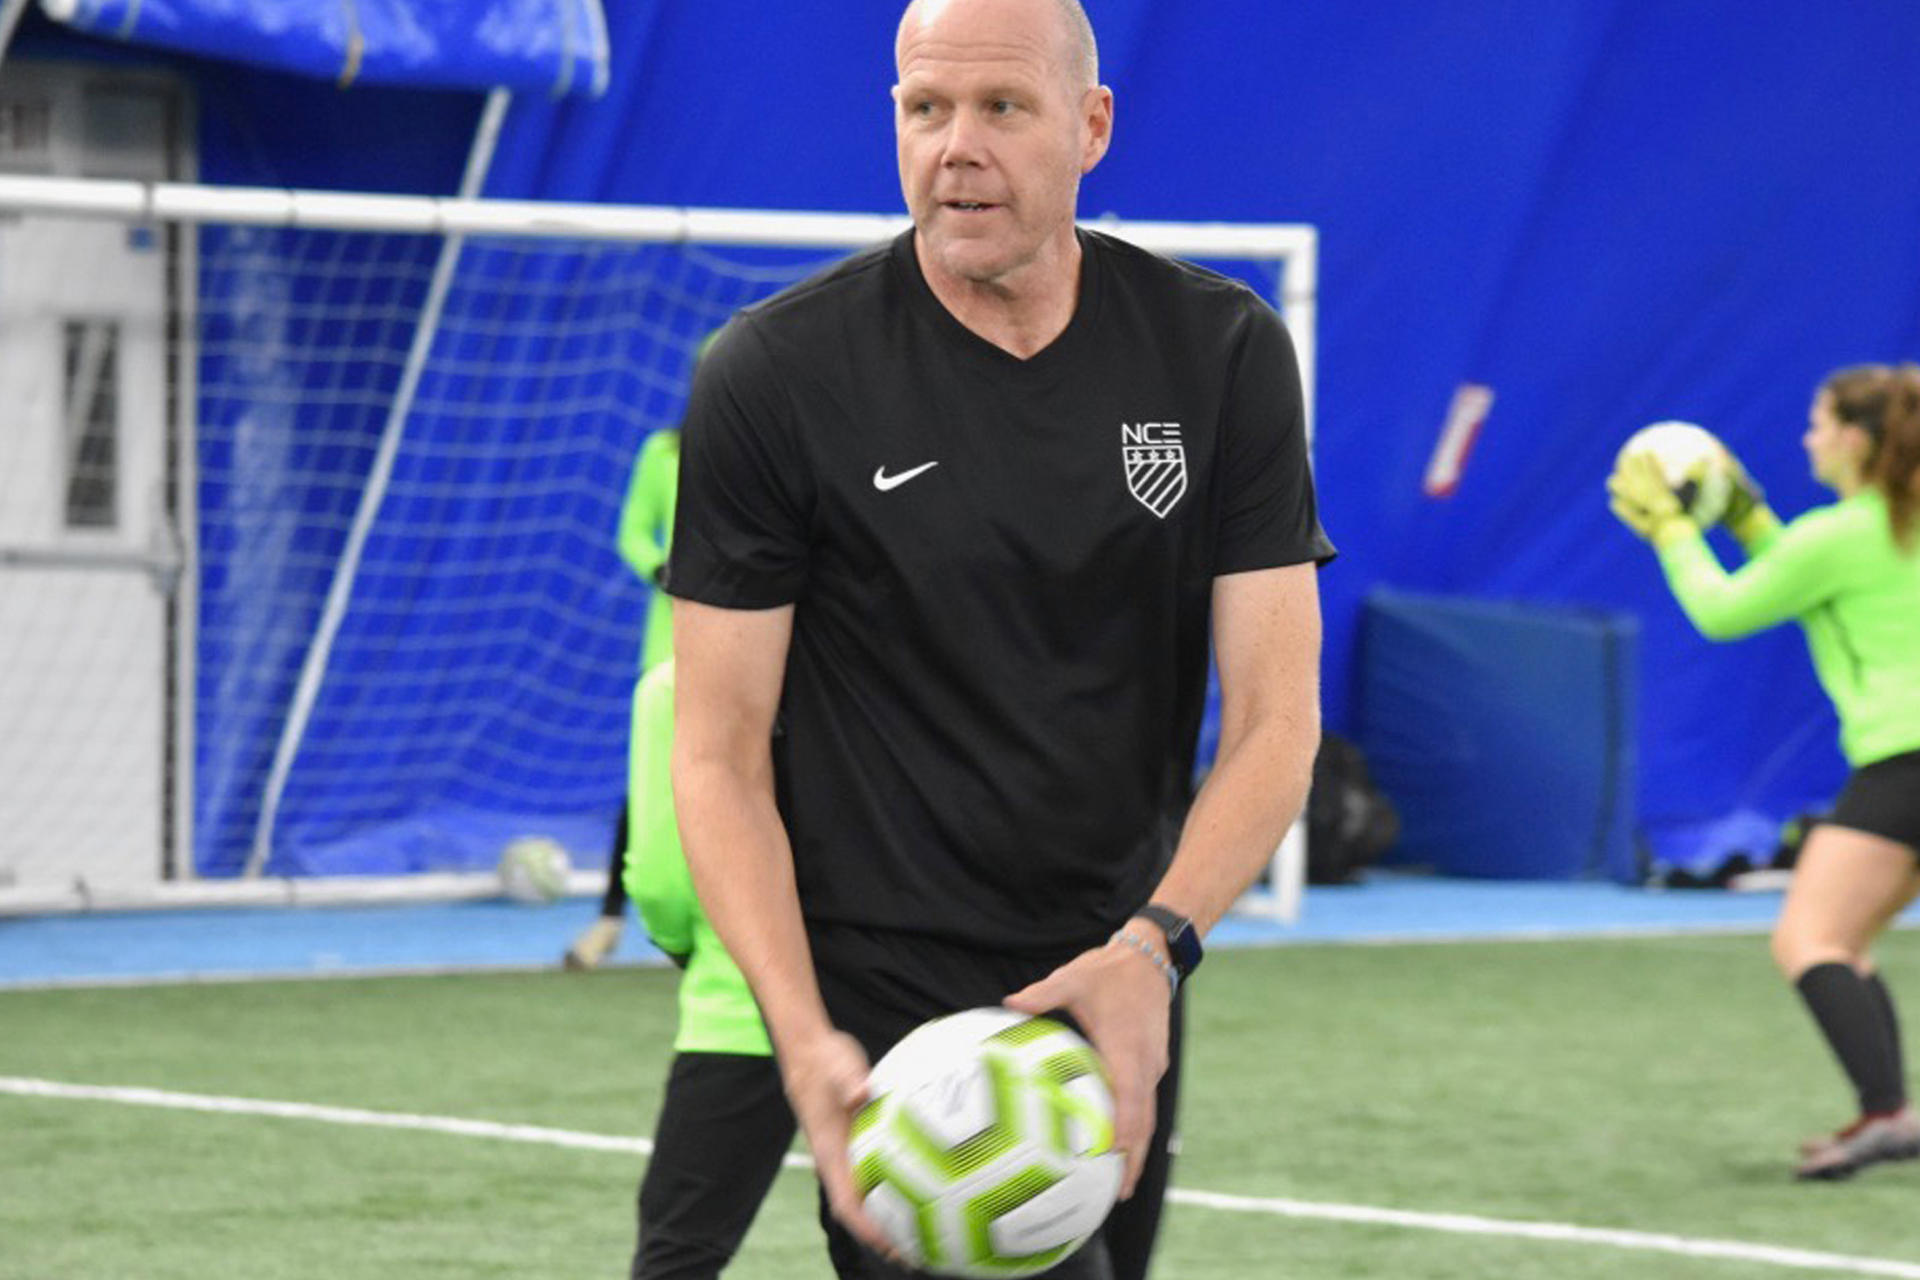 Friedel Addicted To Soccer Drug